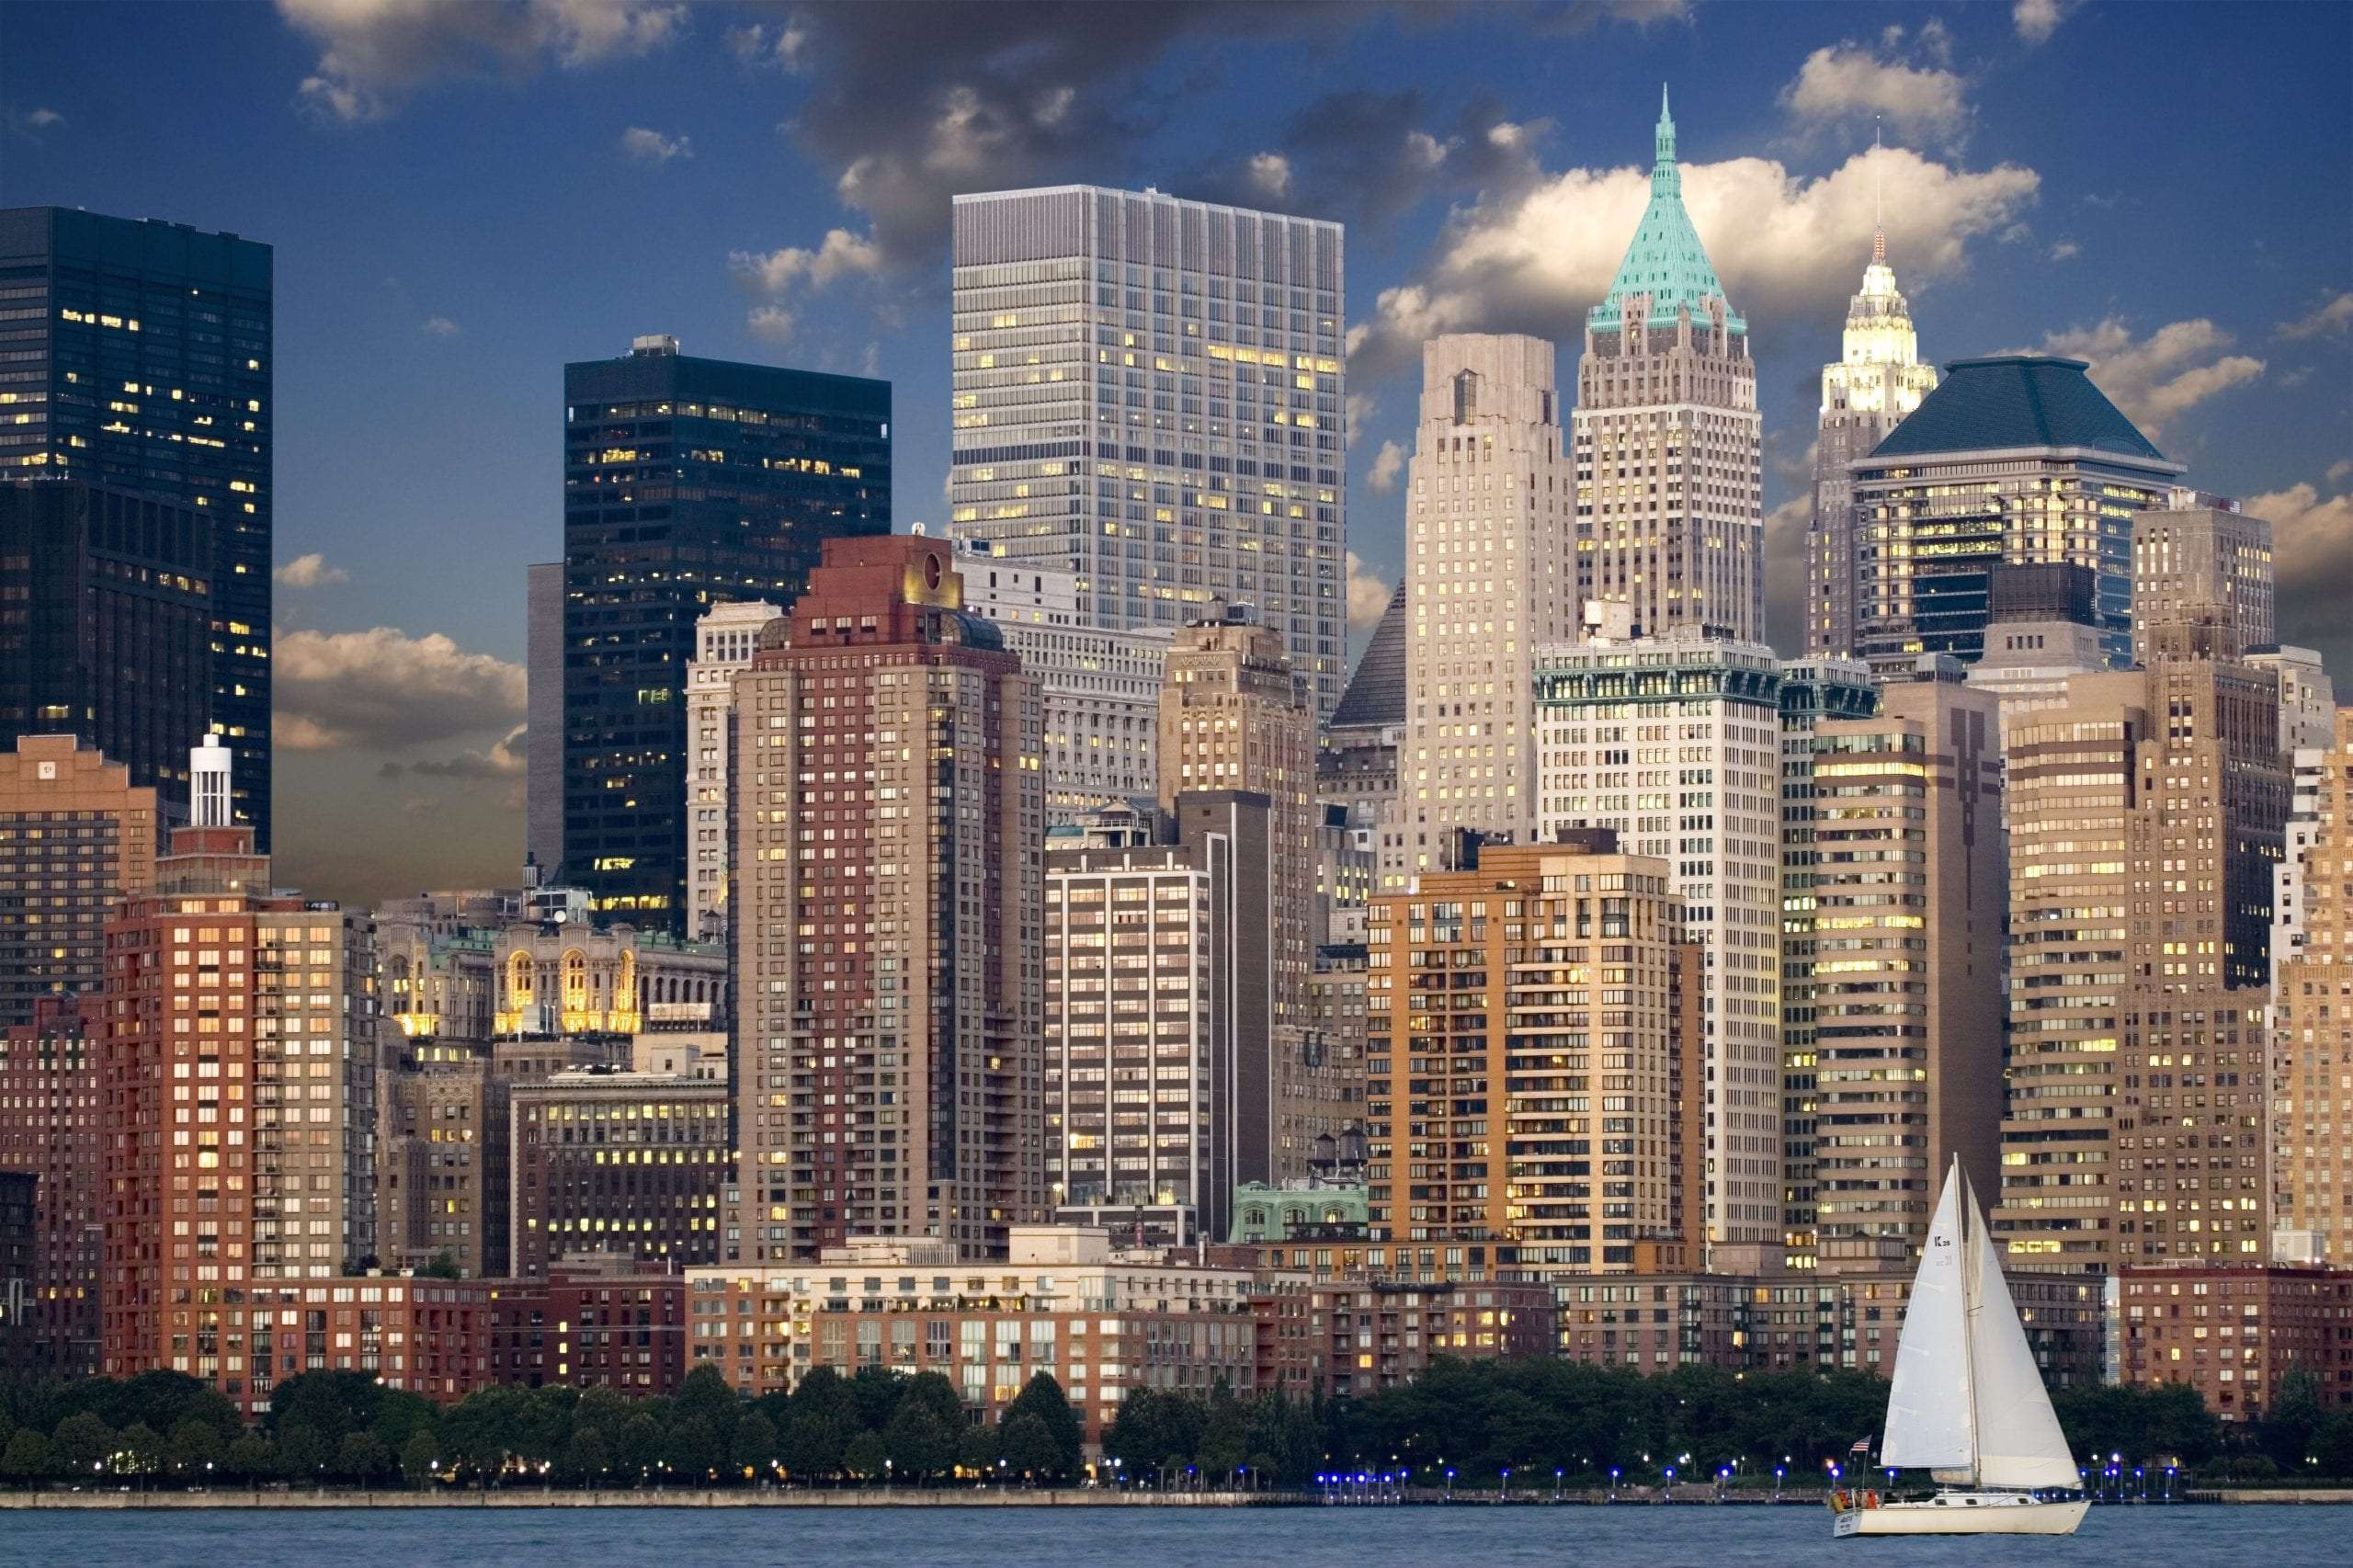 cityscape-during-nighttime-near-body-of-water-and-sail-boat-40142